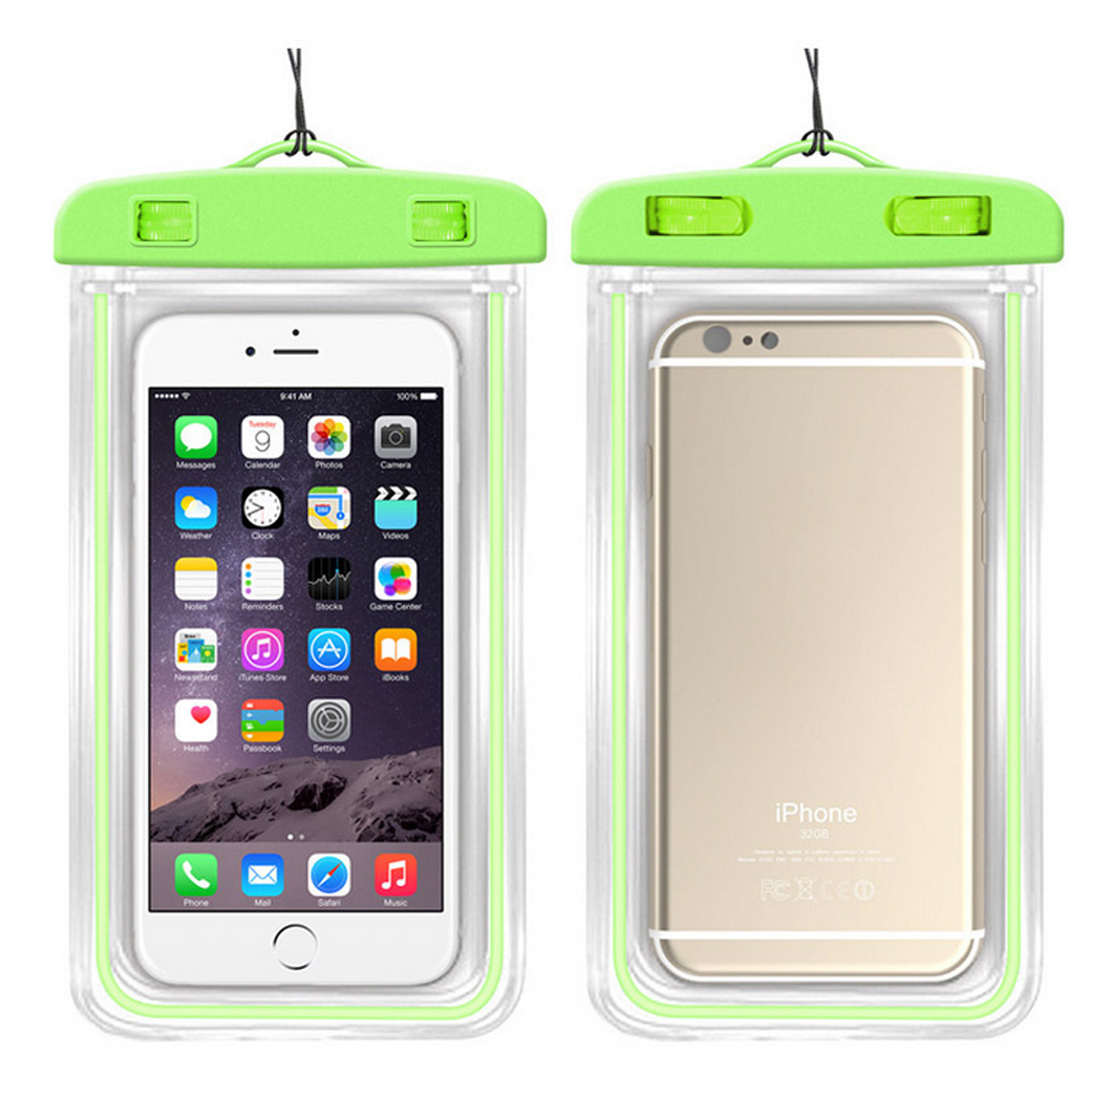 Transparent Dry Bag Waterproof Bags with Luminous Underwater Phone Case Swimming Bags for Universal All Models 3.5 inch -6 inch